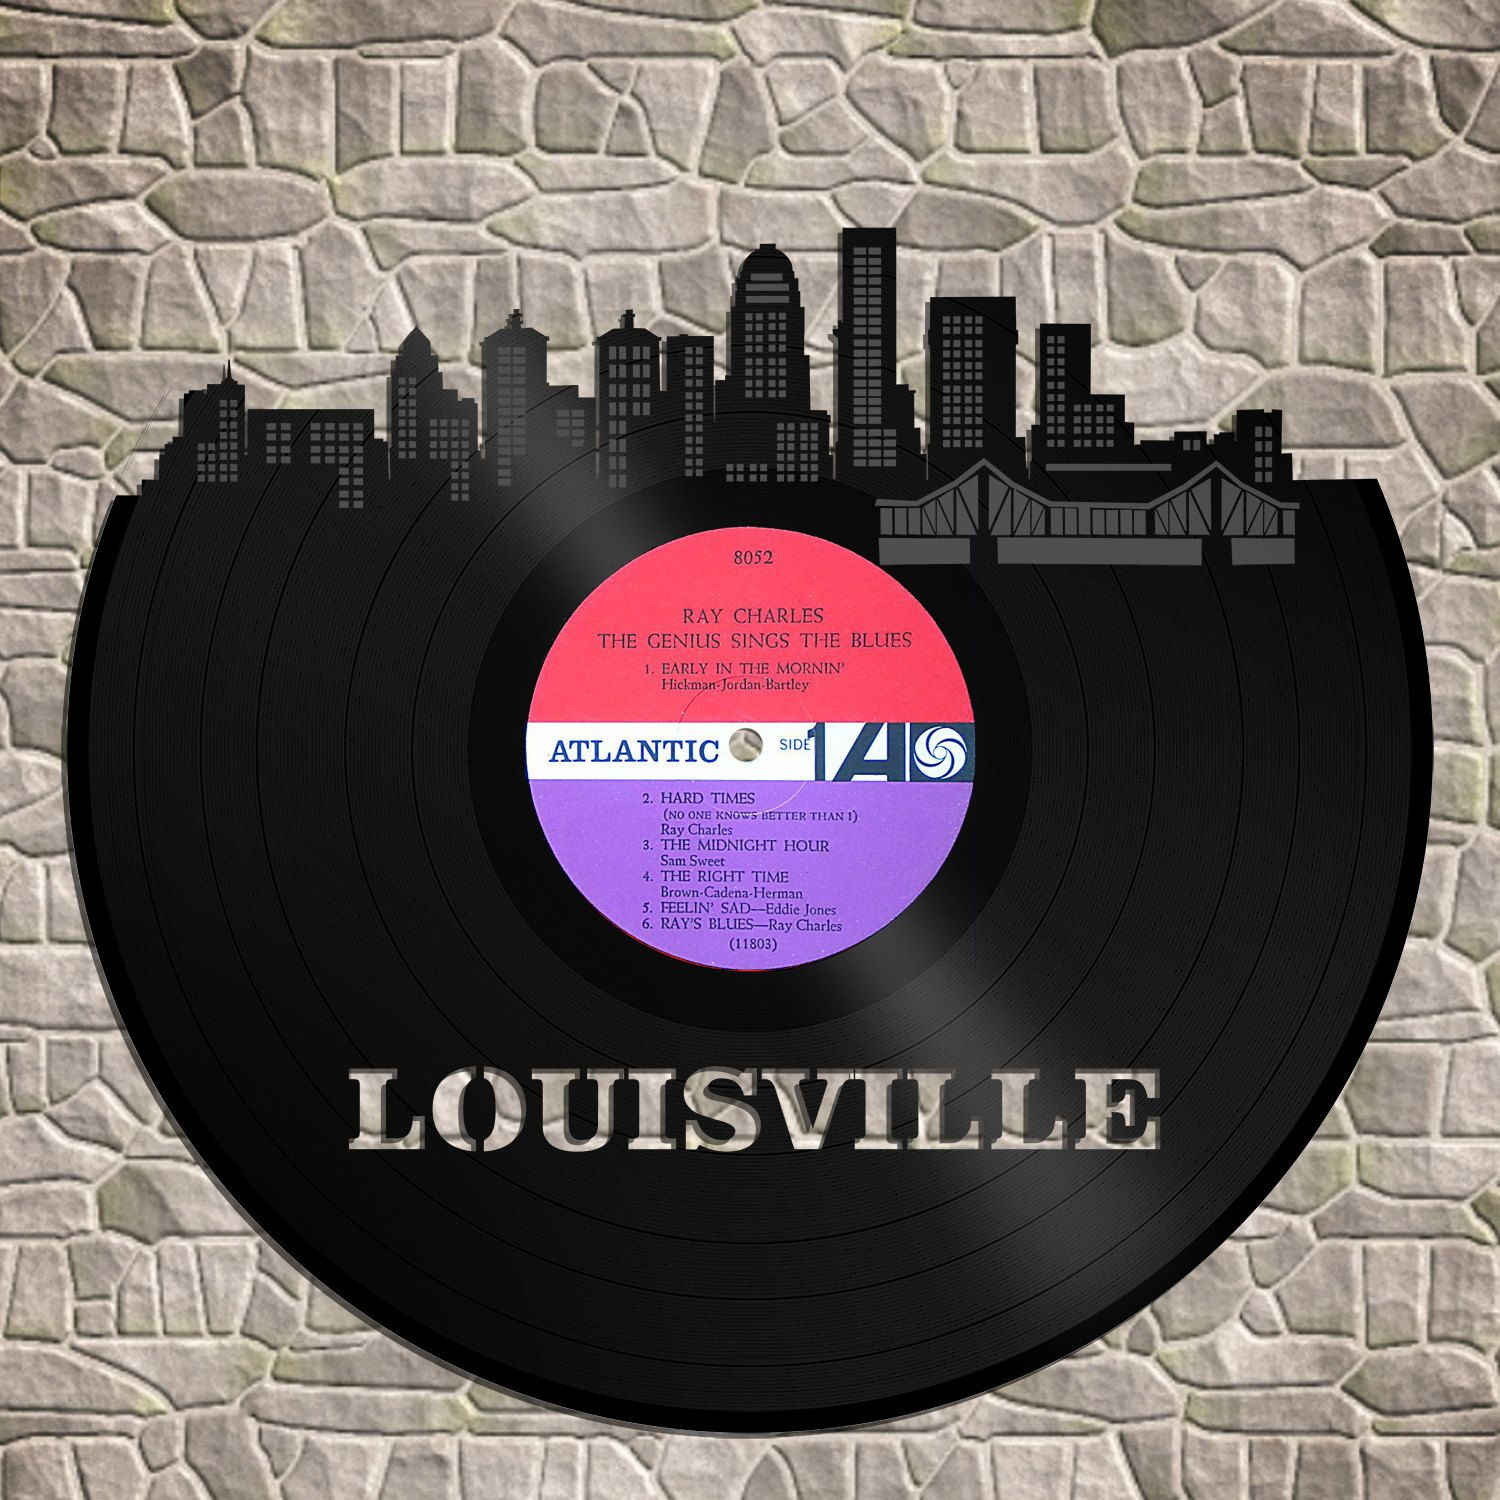 Skyline Wall Decor Louisville Skyline Louisville Cityscape Vinyl Record Art Bachelor Gift Louisville Wedding Illustration By Vinylshopus On Etsy